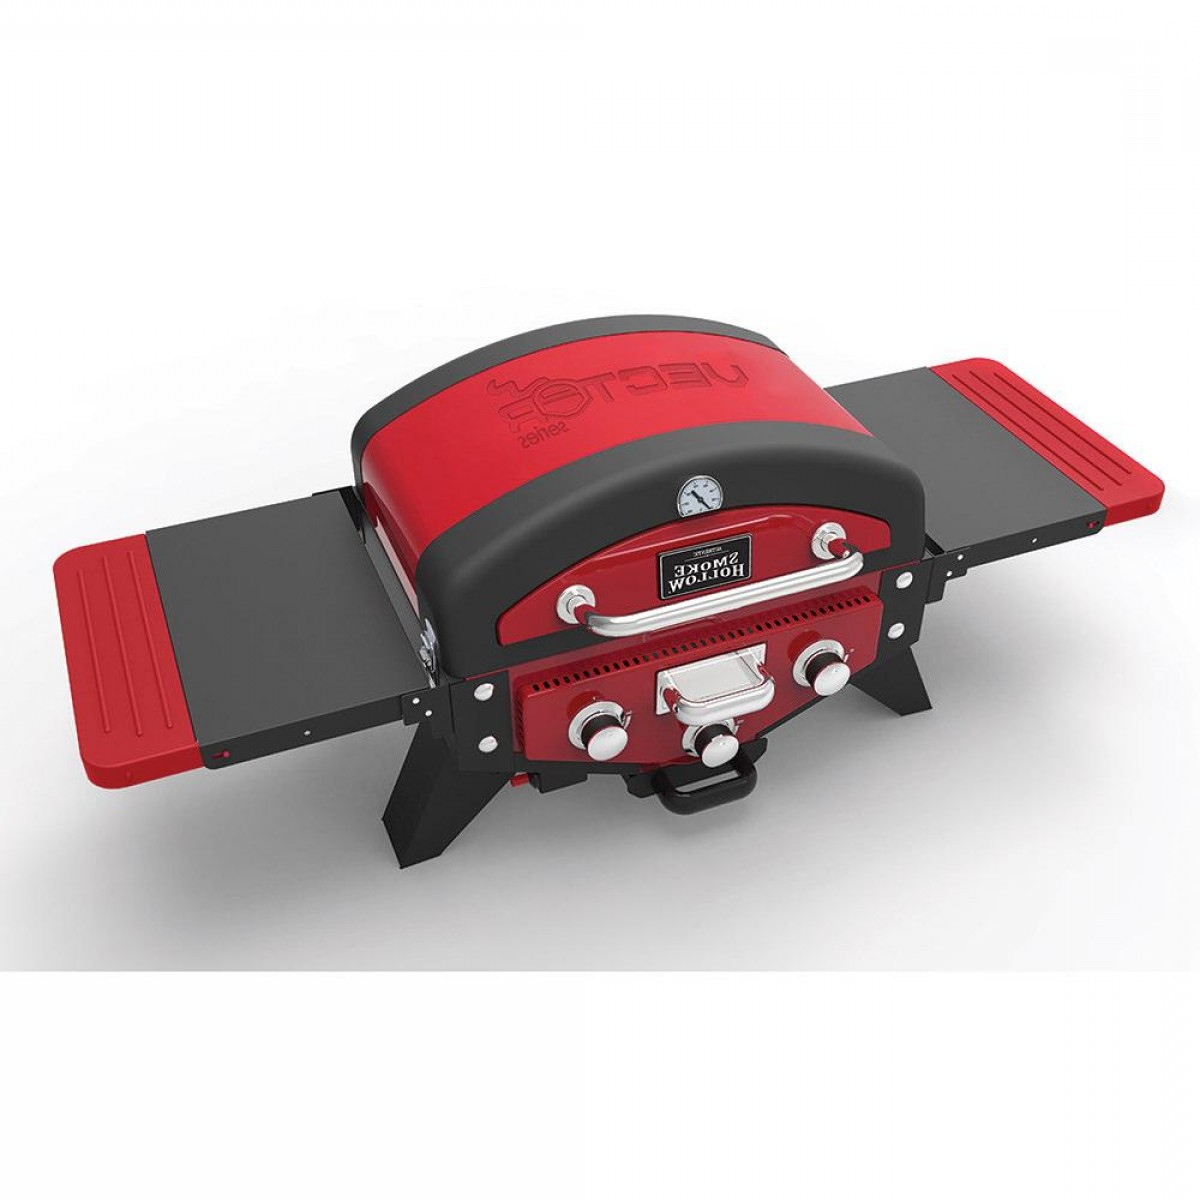 Vector Vacuum Trailer: Smoke Hollow Vector Series Smoking Tabletop Burner Gas Grill